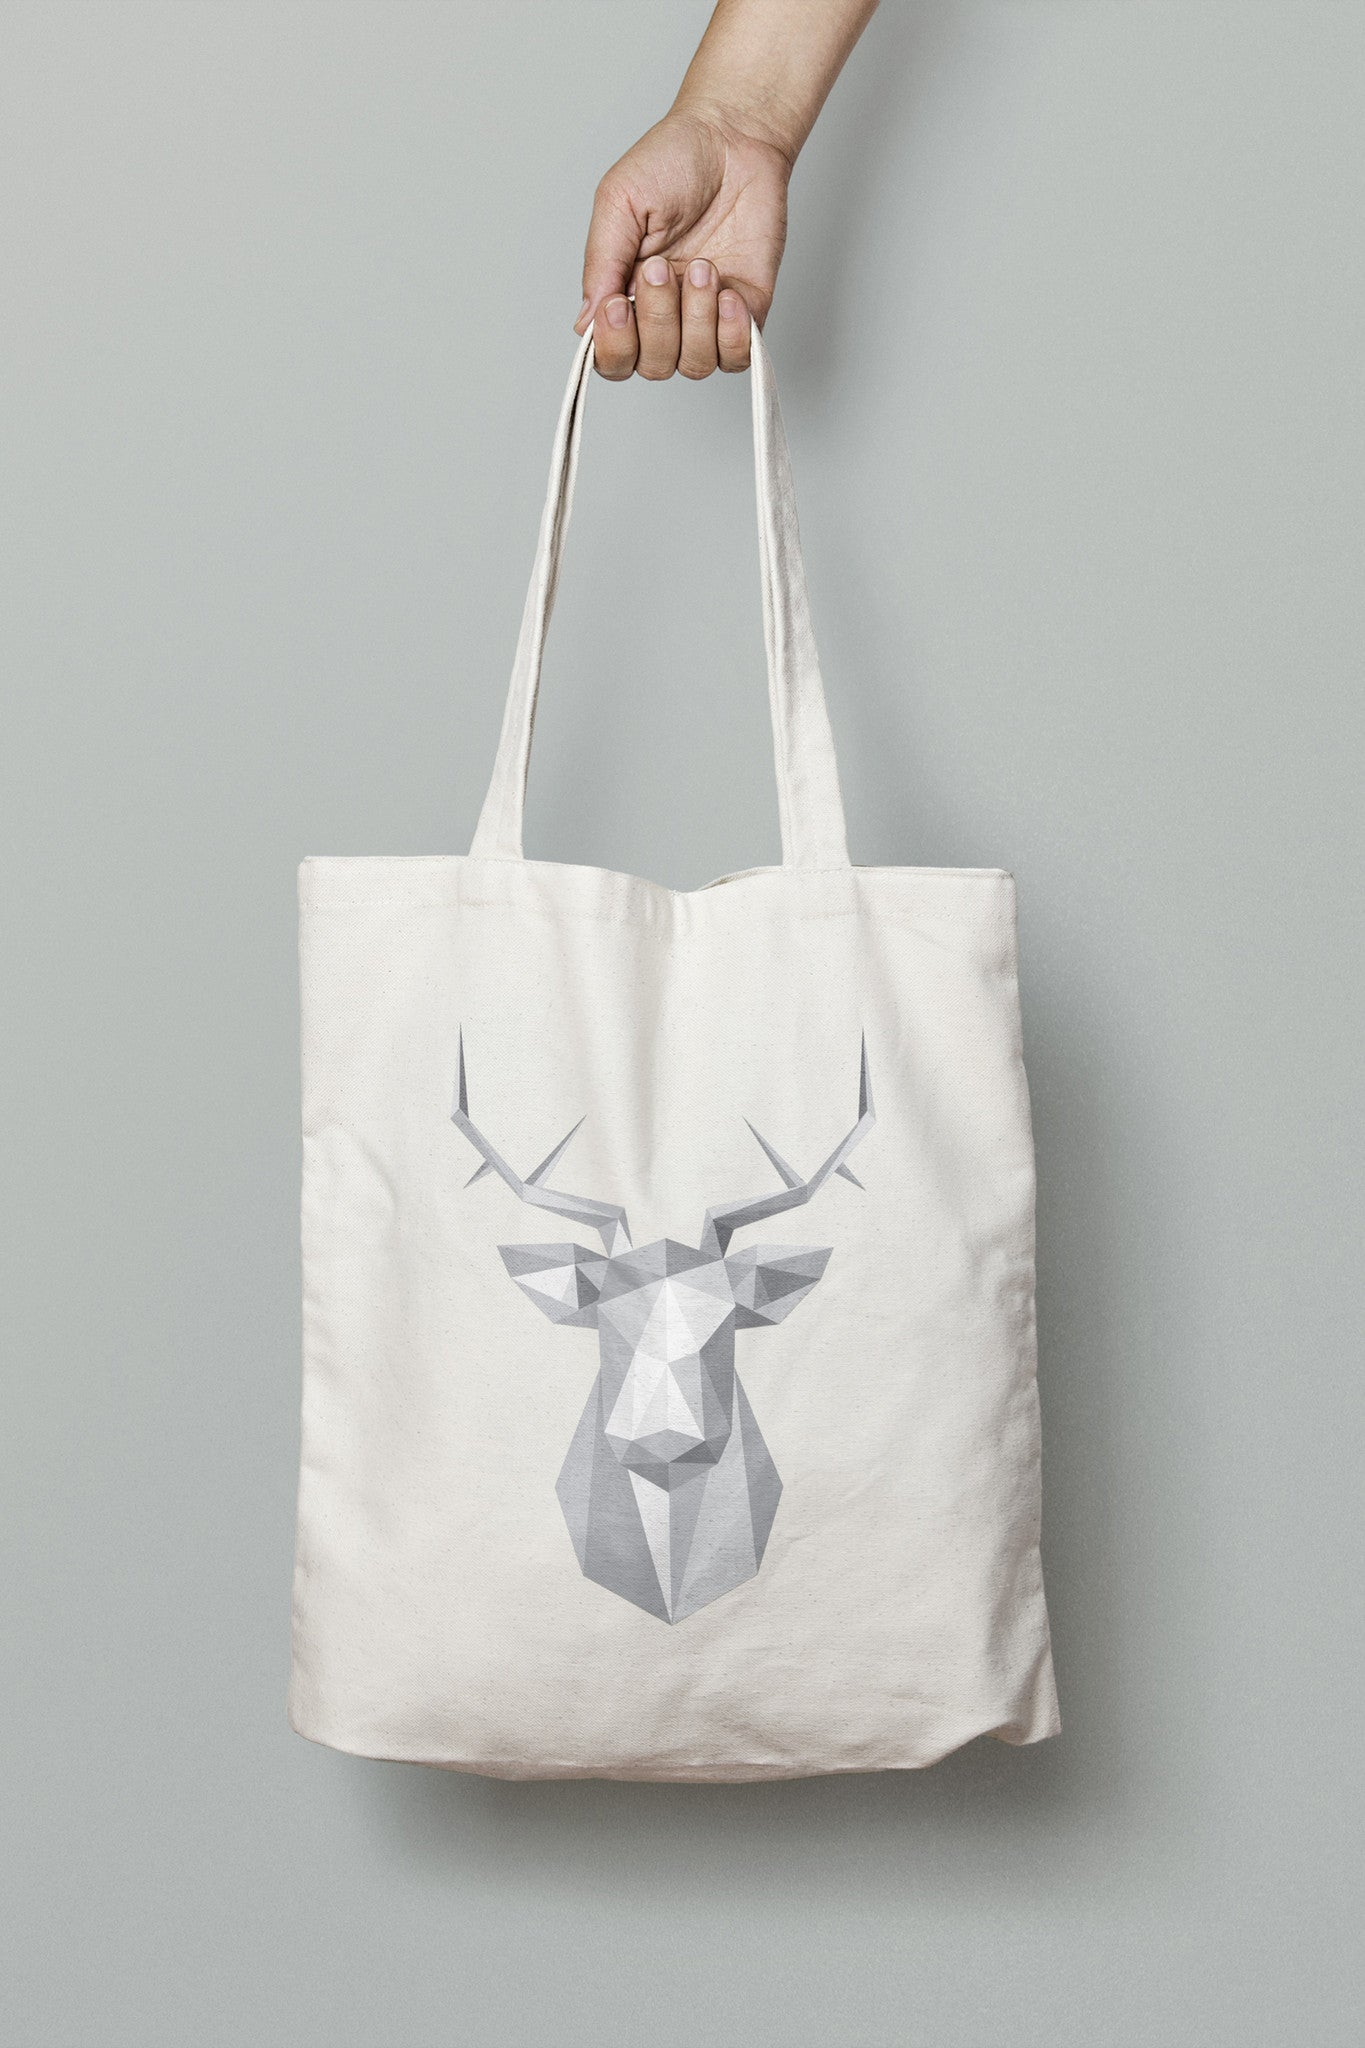 Stag Tote by emerybloom